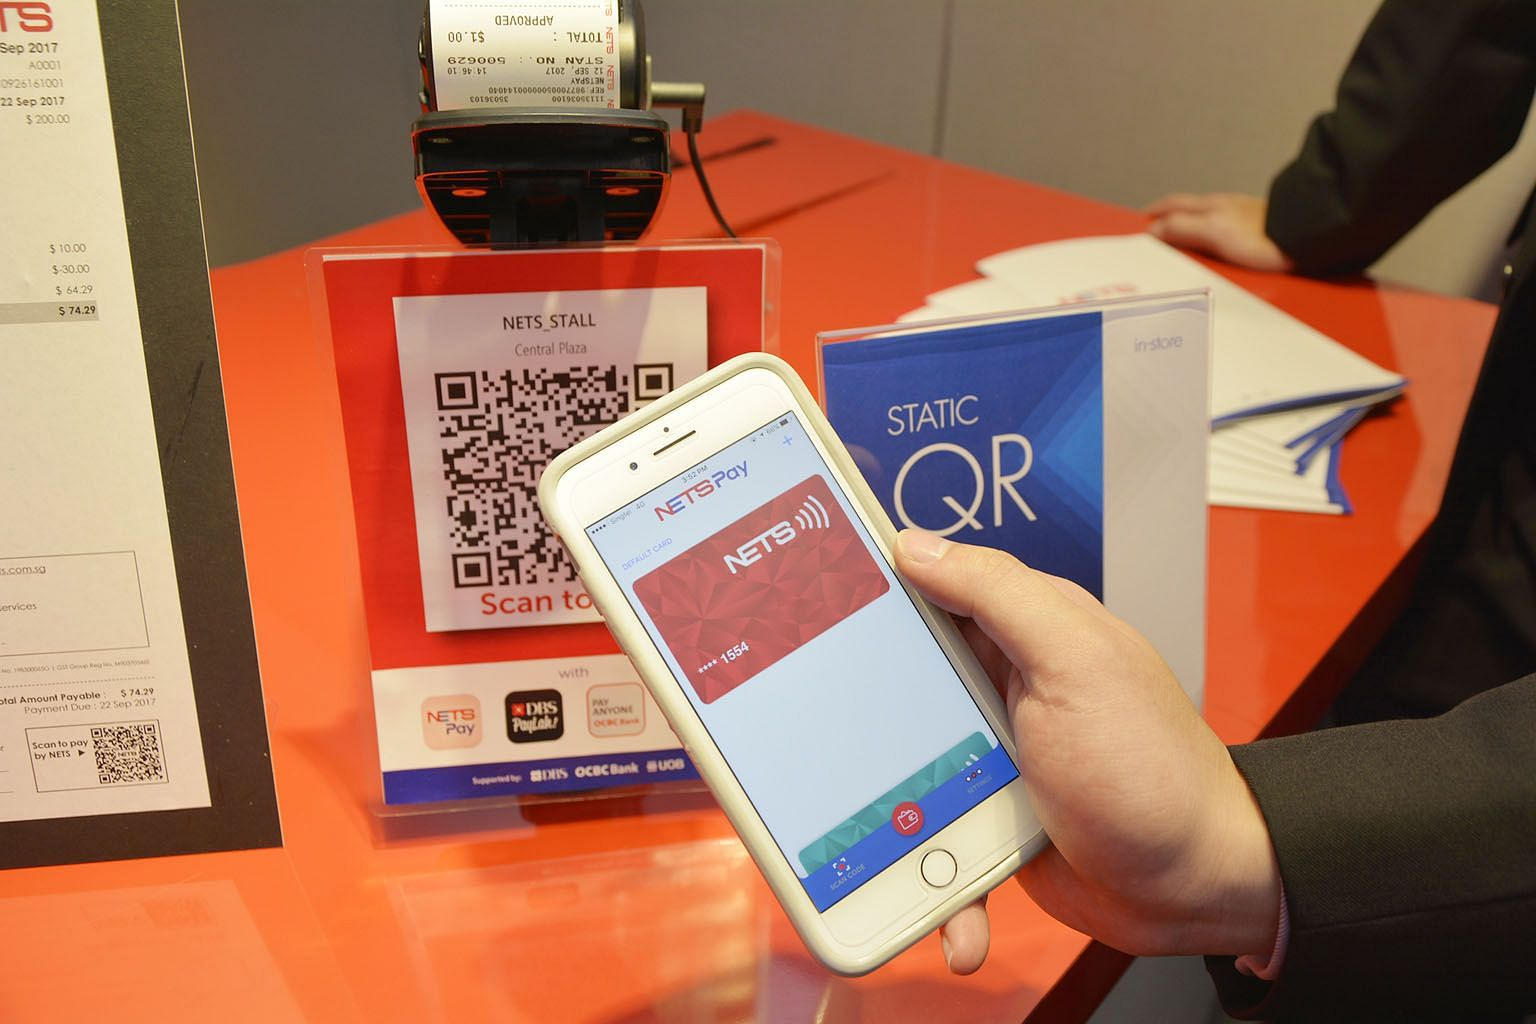 NetsPay lets users digitise their ATM cards, so payments can be debited directly from their bank accounts by tapping their mobile phones on a contactless payment reader or by scanning a QR code.